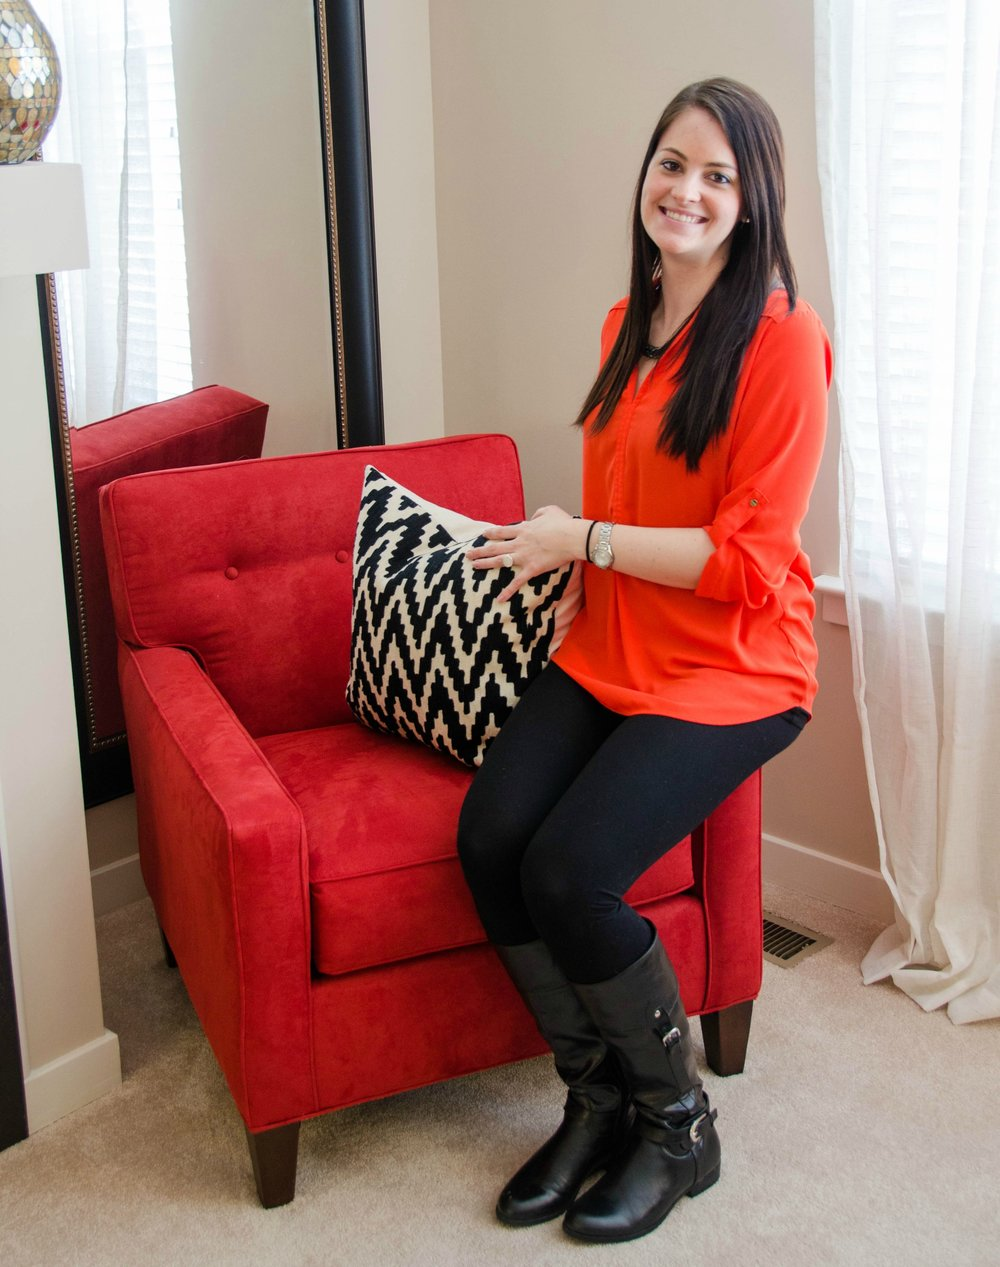 She Received Her Degree From Council For Interior Design Accreditation High Point University Heather Not Only Creates The Best